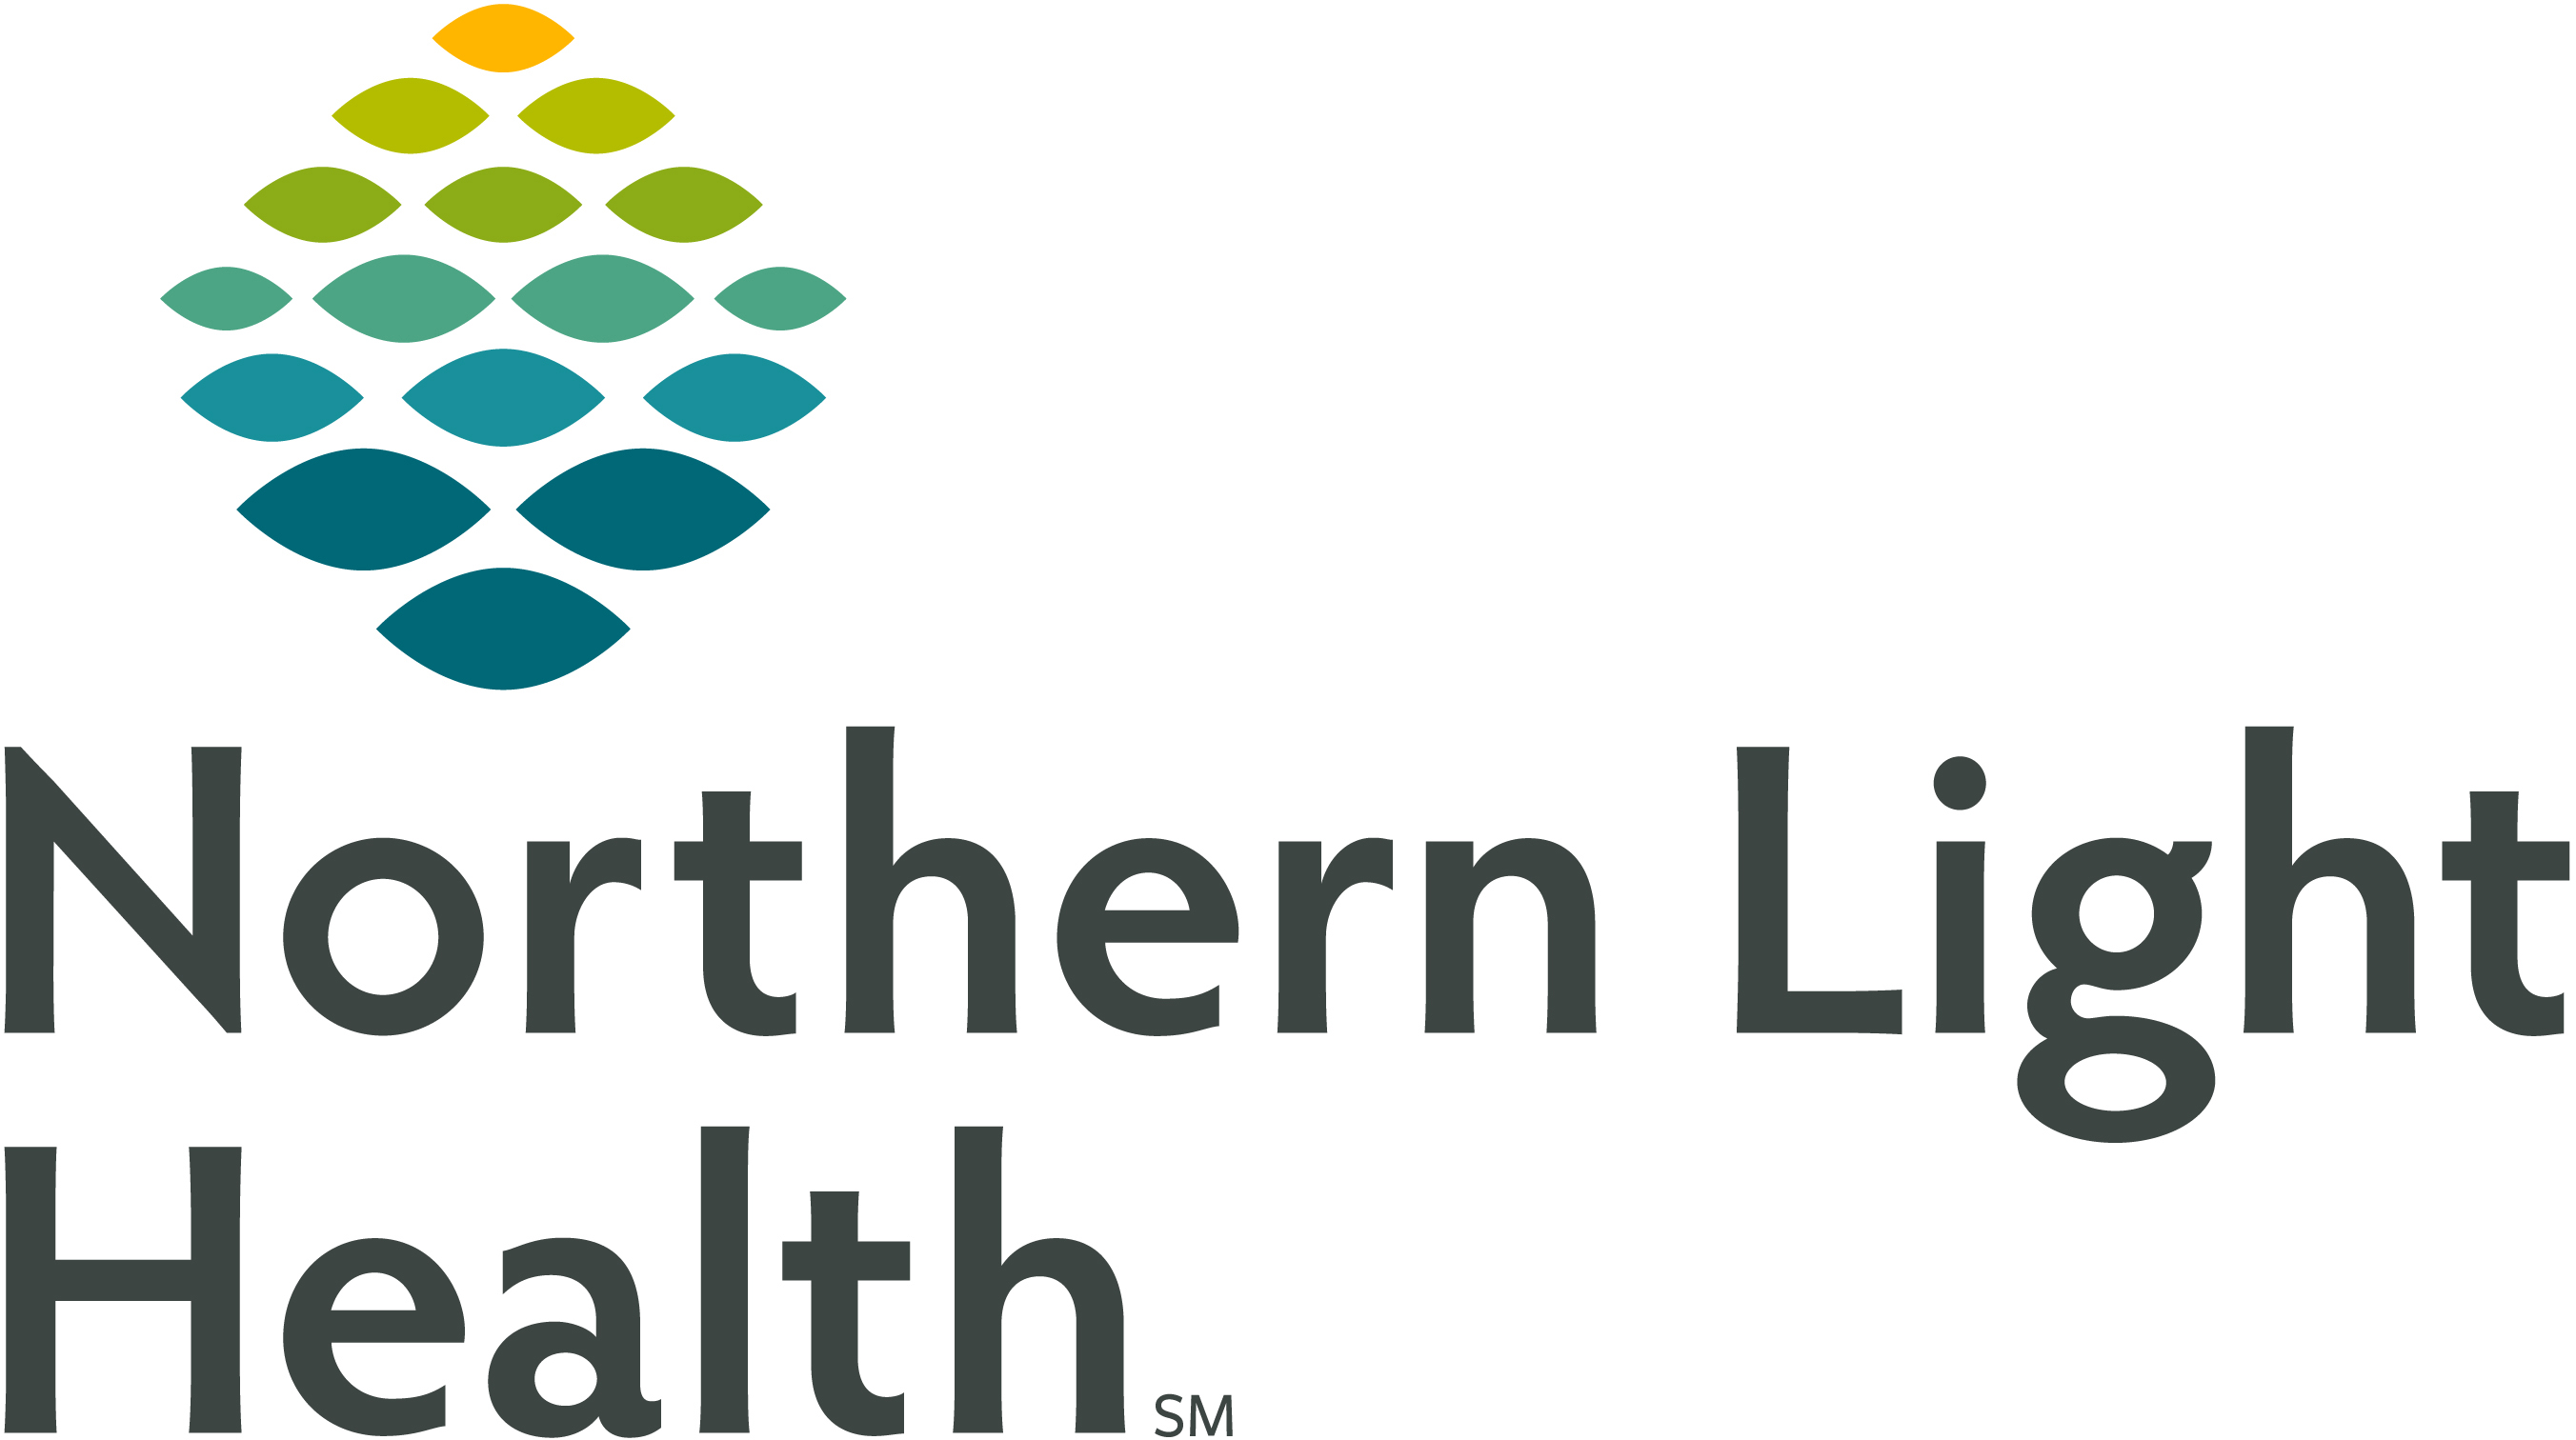 https://www.juniorachievement.org/documents/2972719/0/Northern+Light+Health.jpg/d550bfab-cf11-4e7b-b30f-81308b8e1163?t=1566847852902